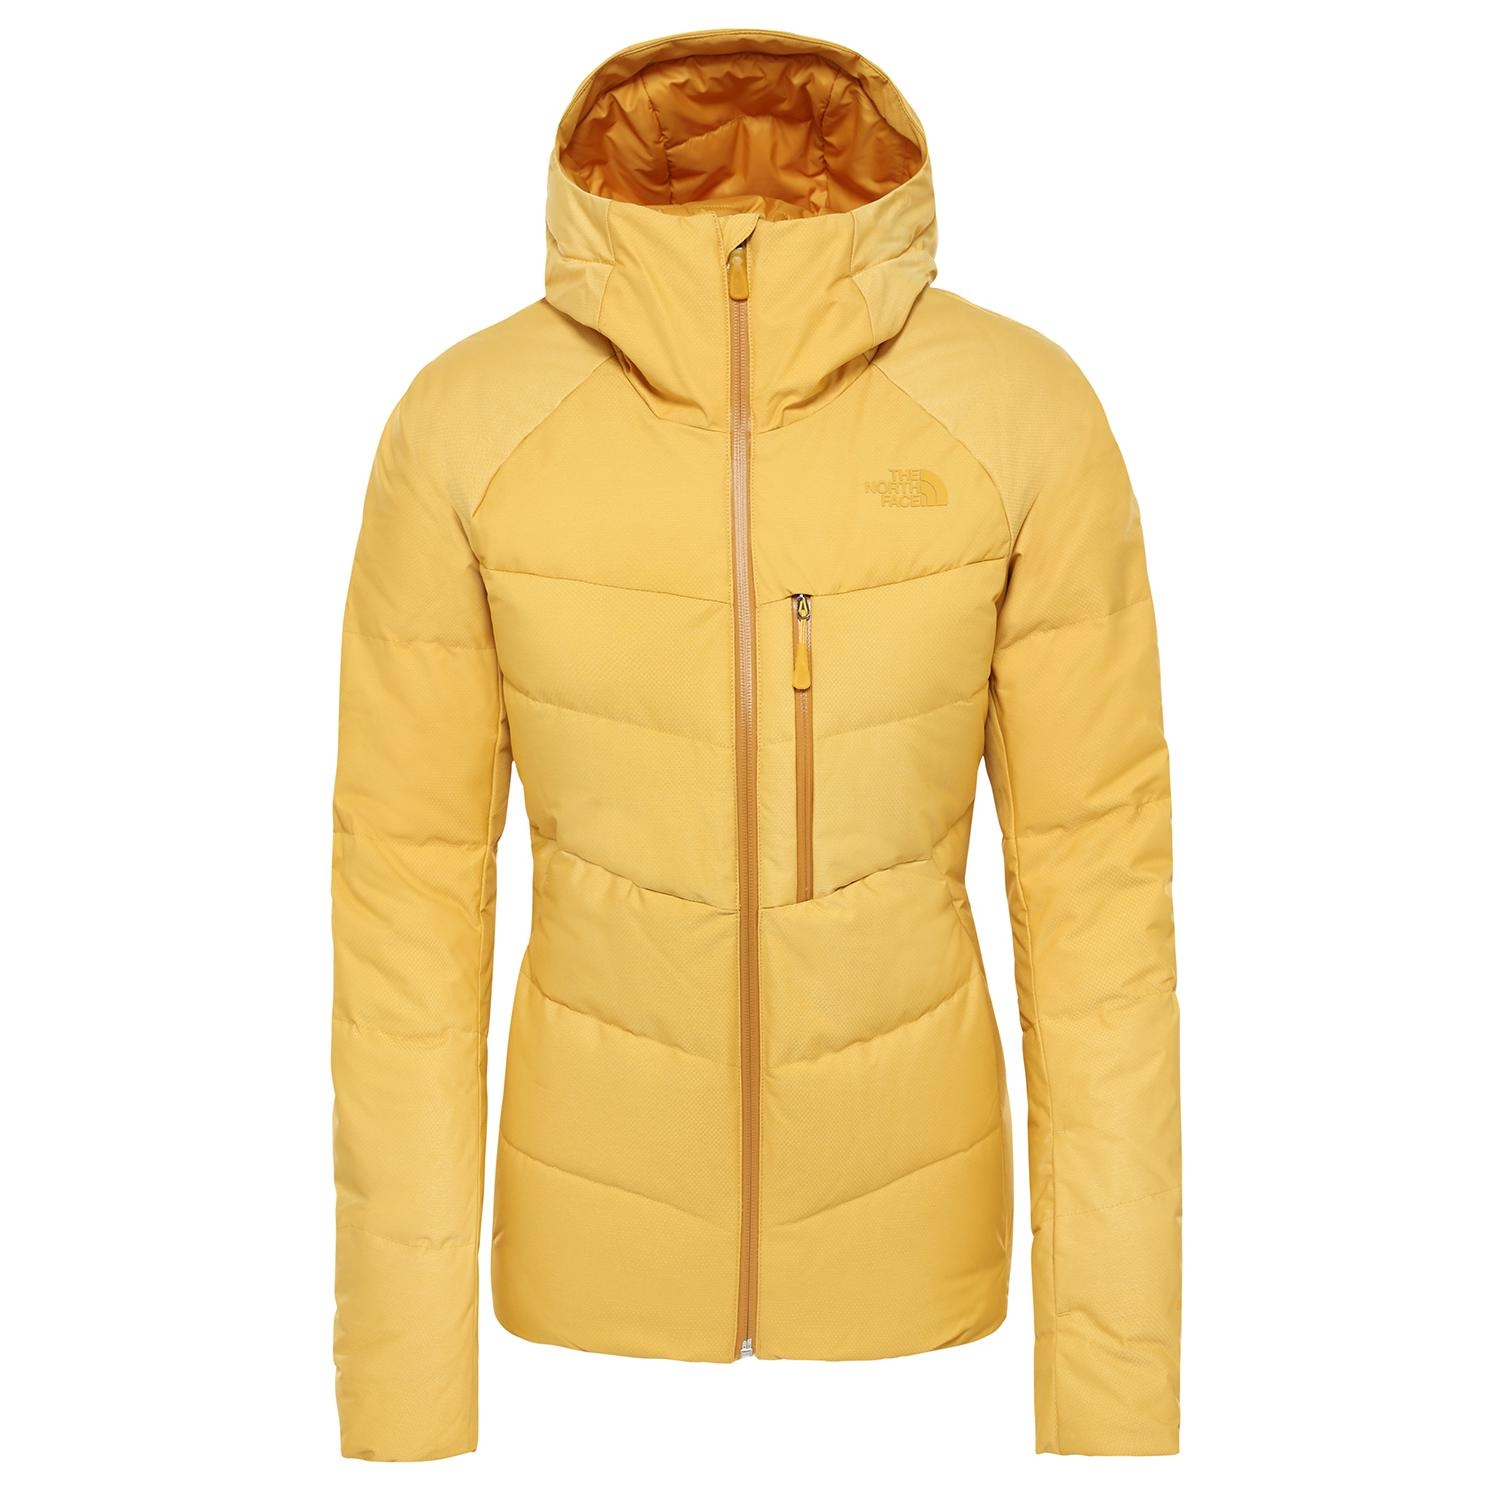 North Face Heavenly Down Jacket Golden Spice 2020